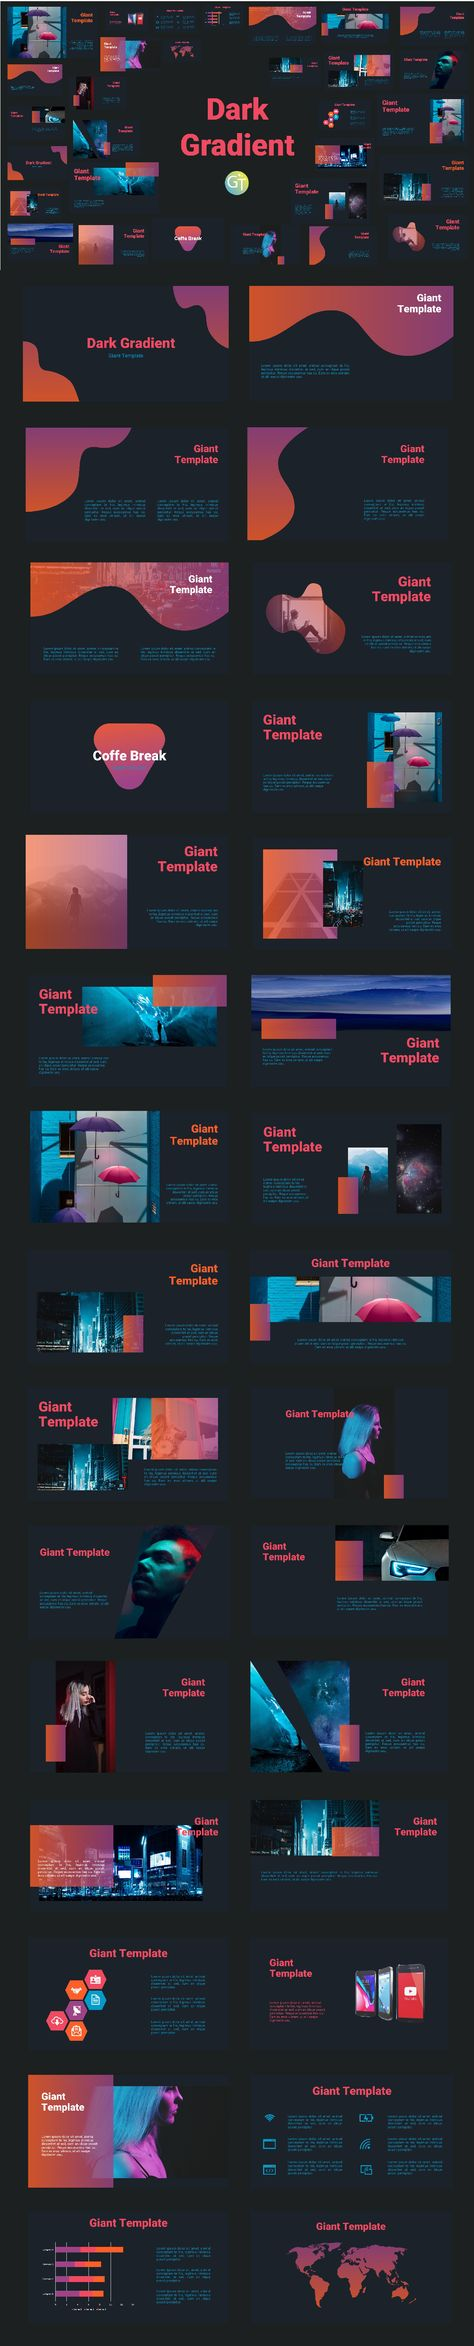 dark gradient free powerpoint download template